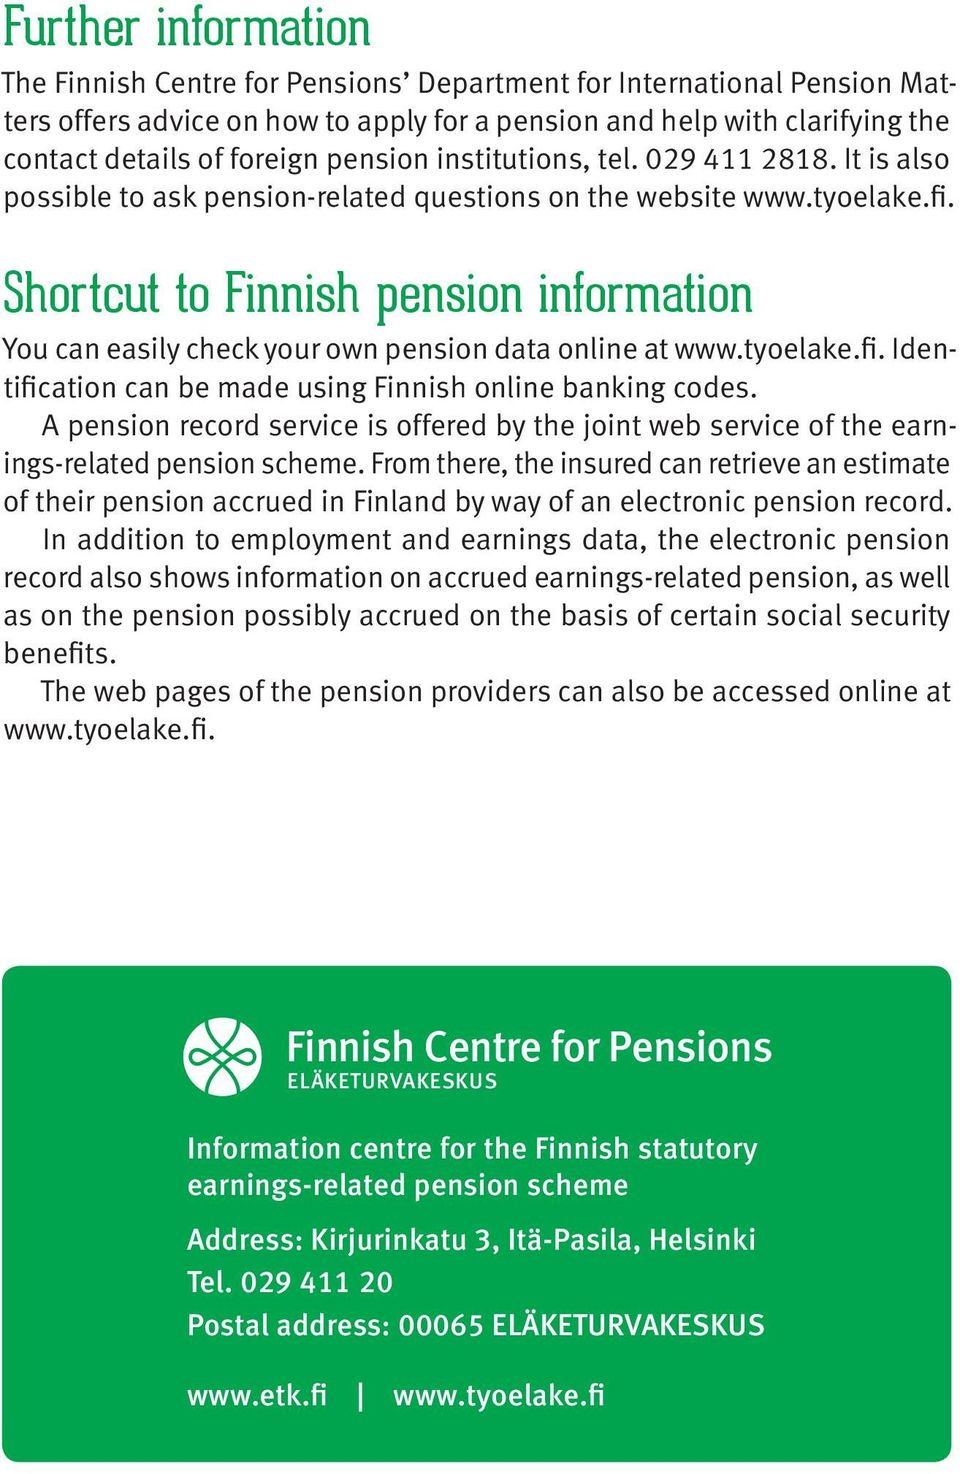 Shortcut to Finnish pension information You can easily check your own pension data online at www.tyoelake.fi. Identification can be made using Finnish online banking codes.